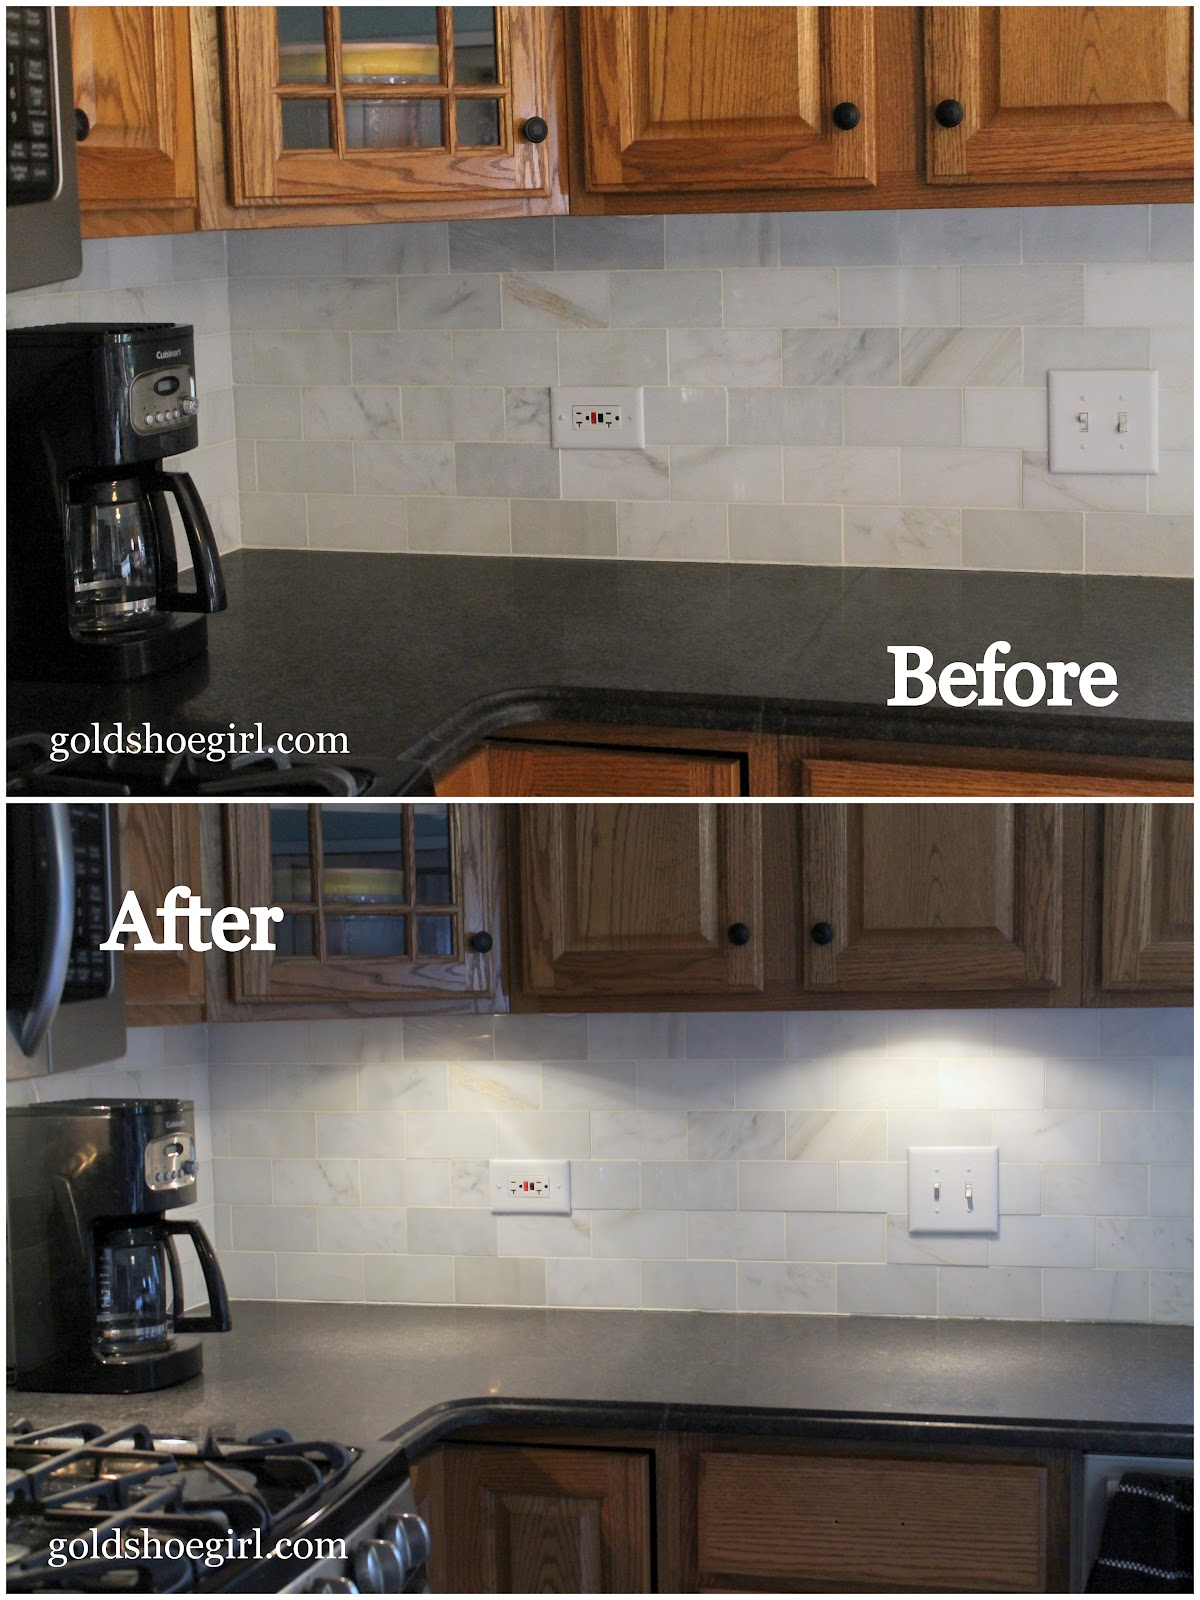 Gold Shoe Girl: How to Install Under Cabinet Accent Lights